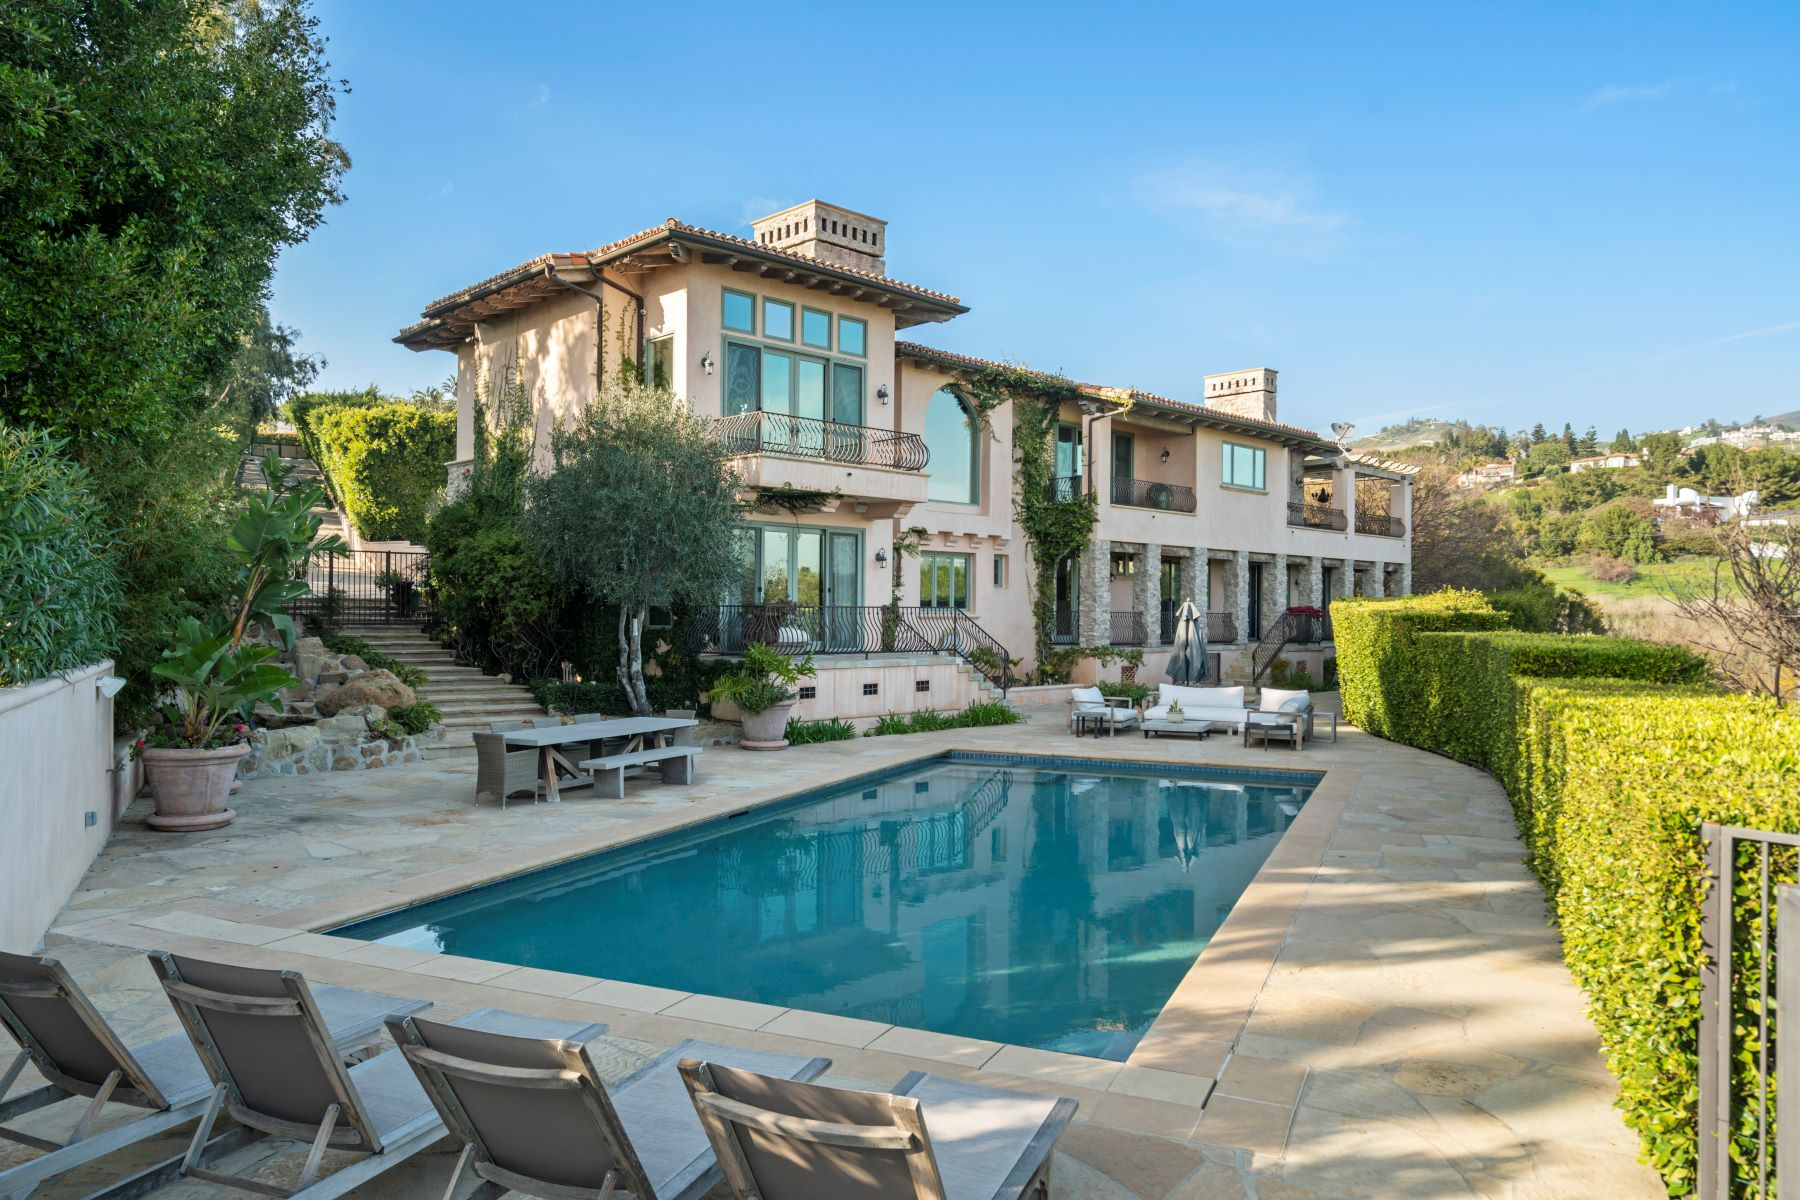 Property for Sale at Dream View Villa 27856 West Winding Way Malibu, California 90265 United States